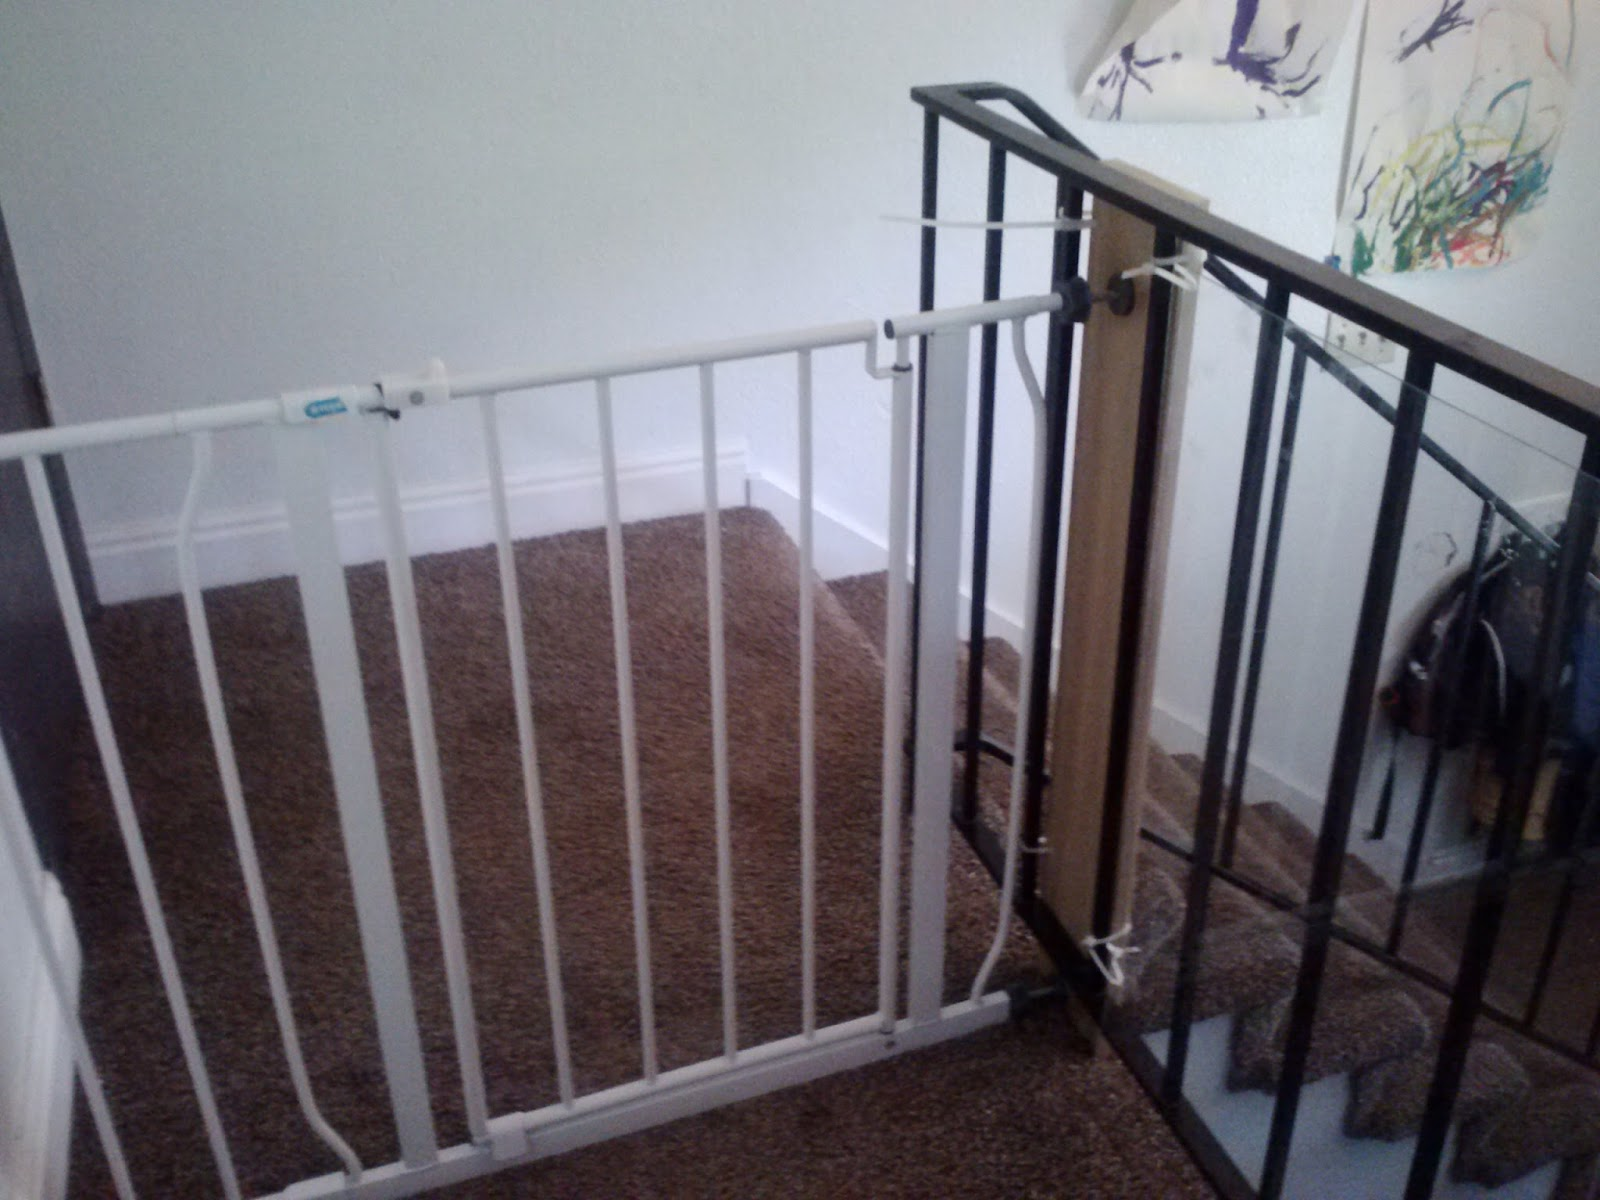 Toddler Dispute Resolution How To Baby Proof A Banister